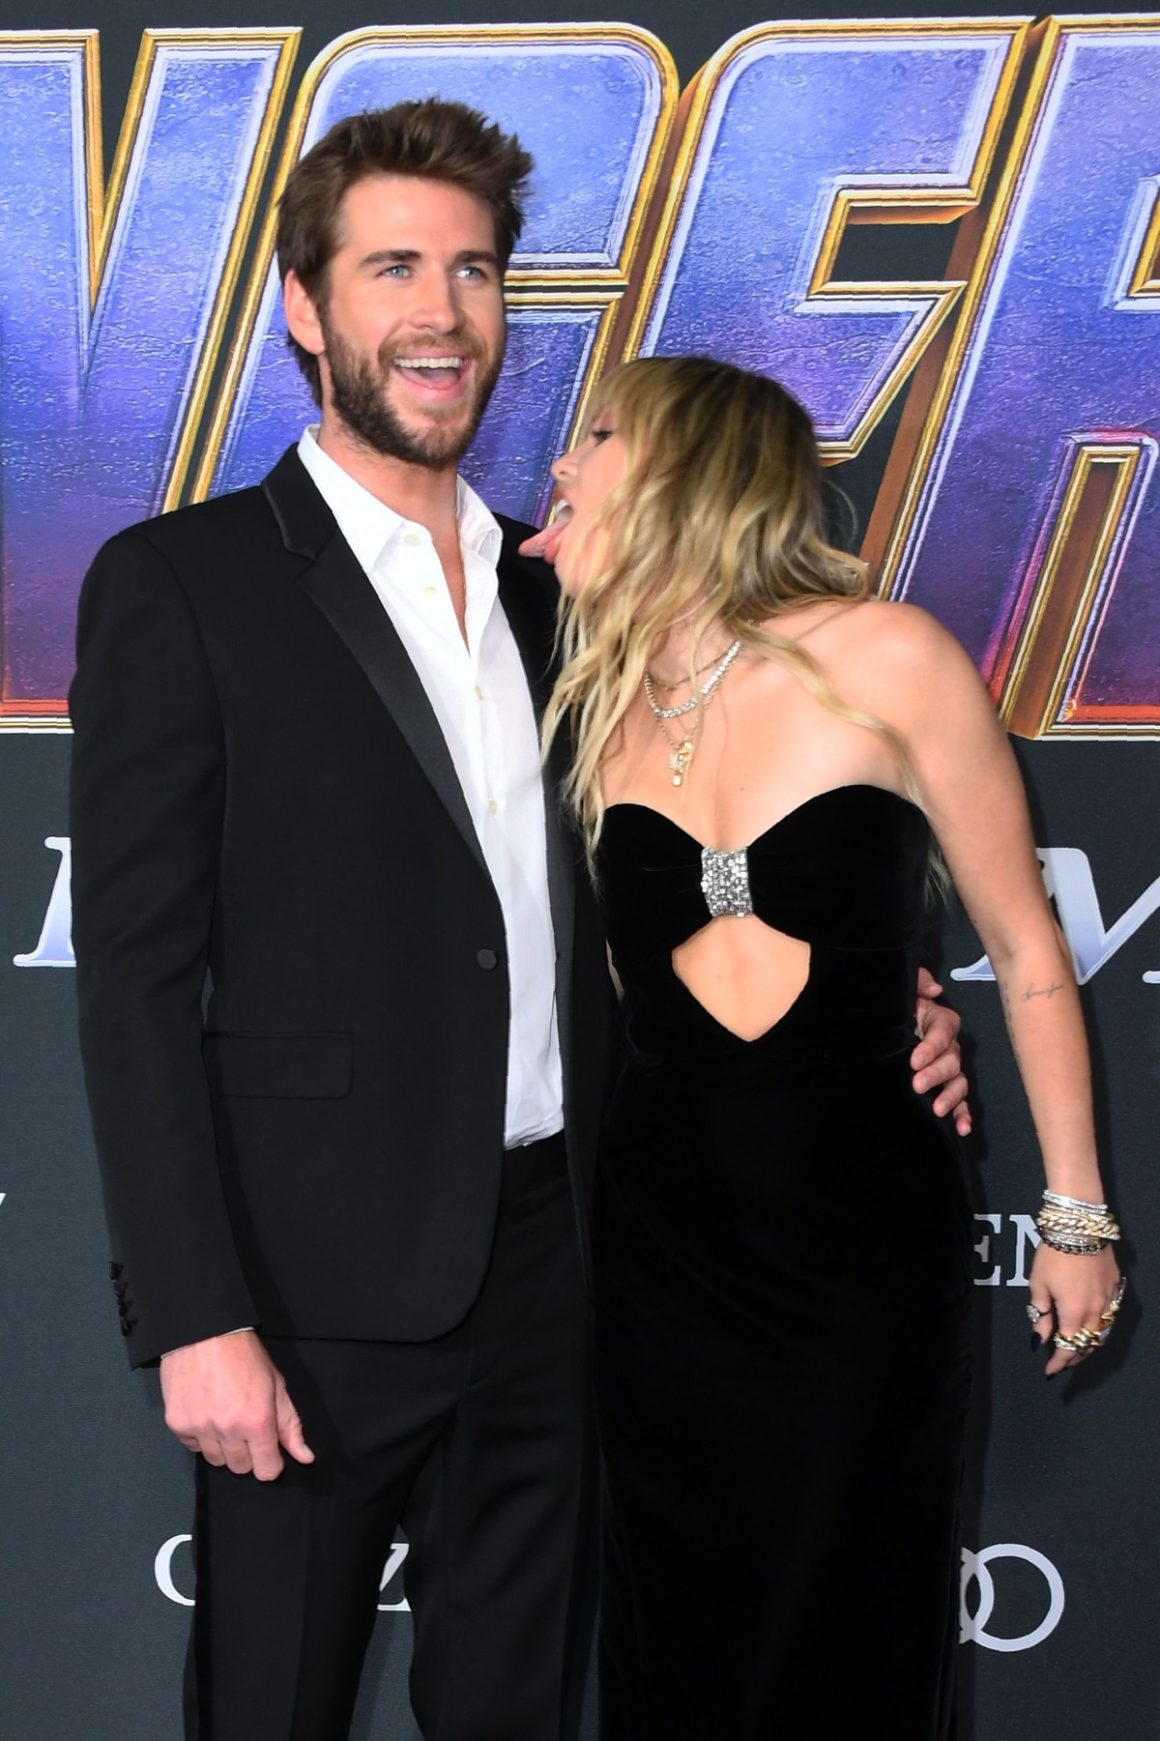 Miley Cyrus and Australian actor Liam Hemsworth